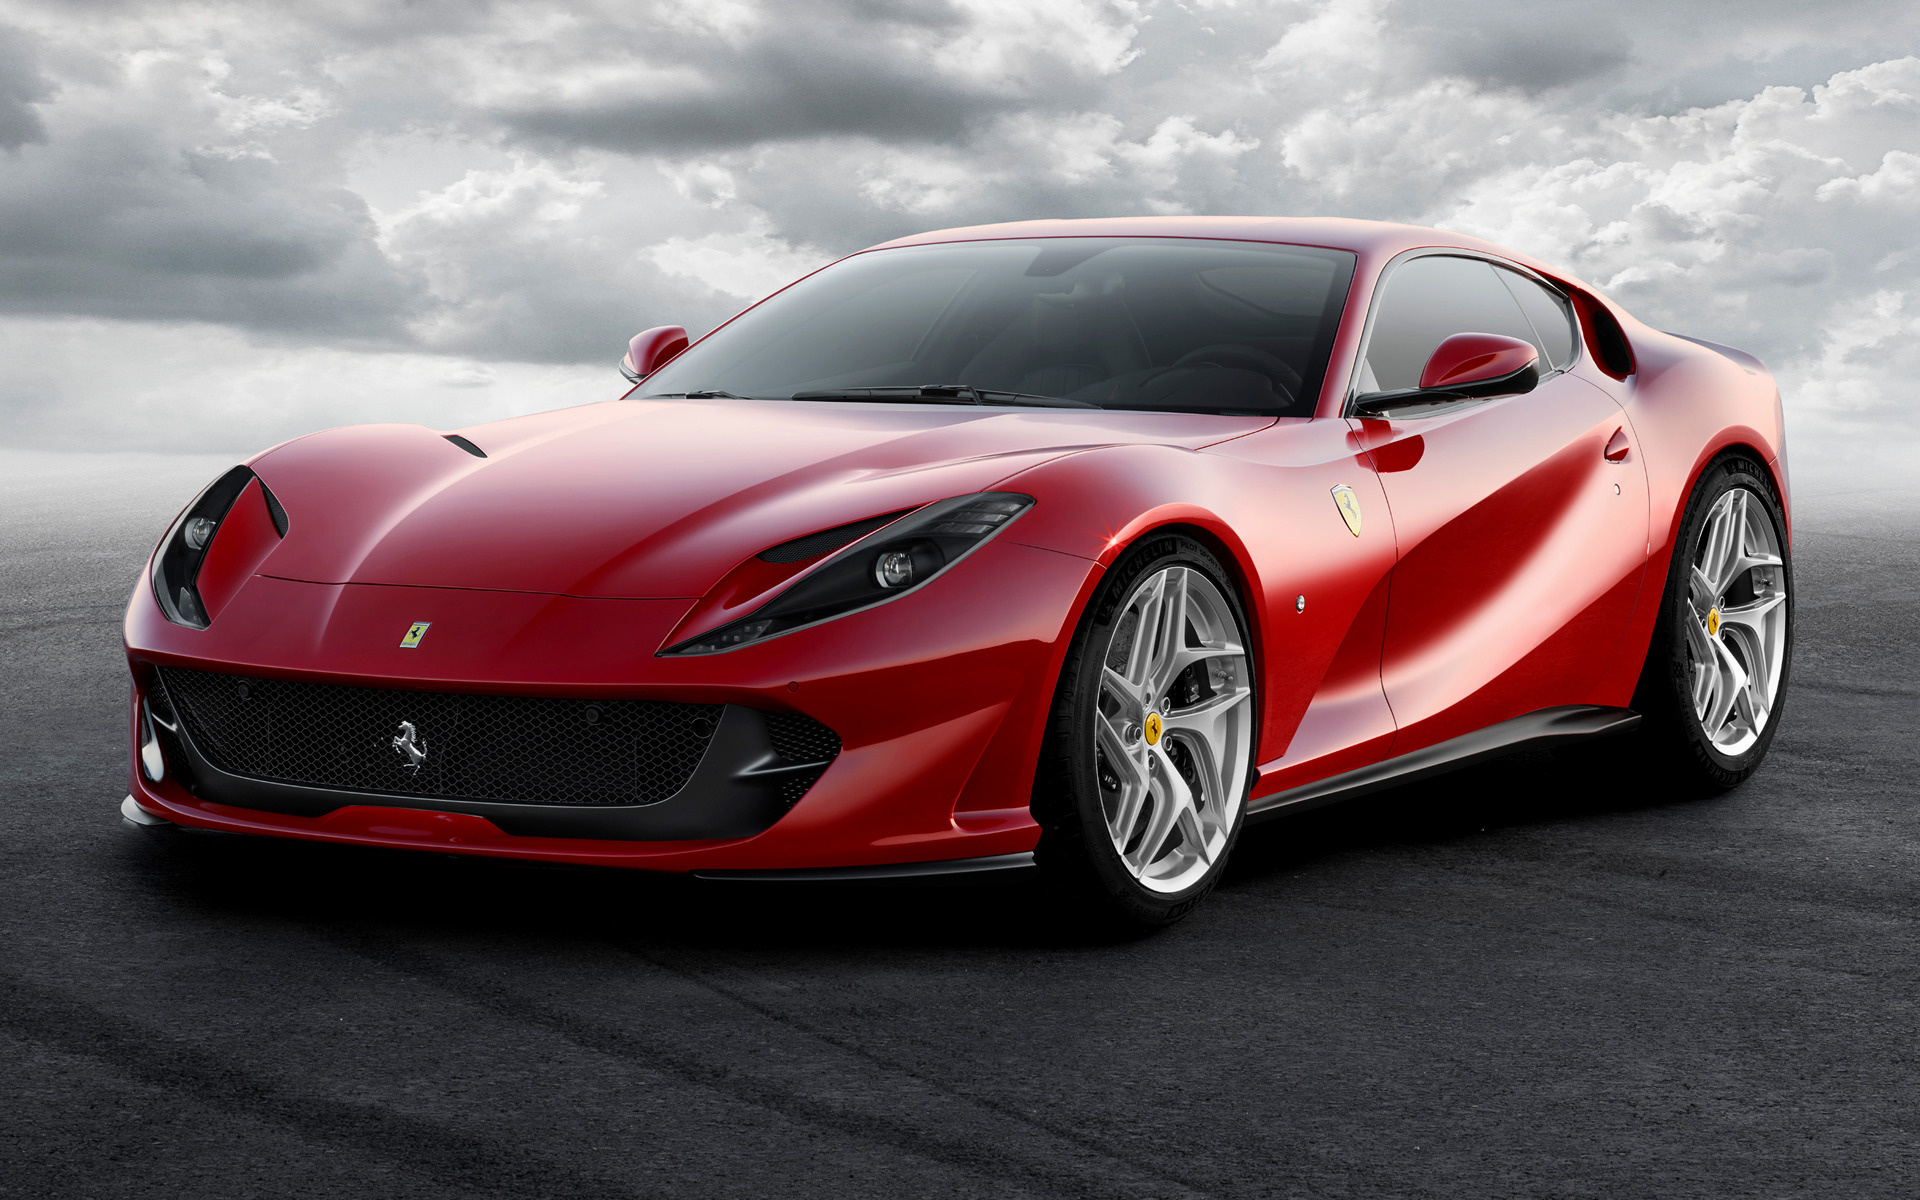 2017 Ferrari 812 Superfast Wallpapers and HD Images